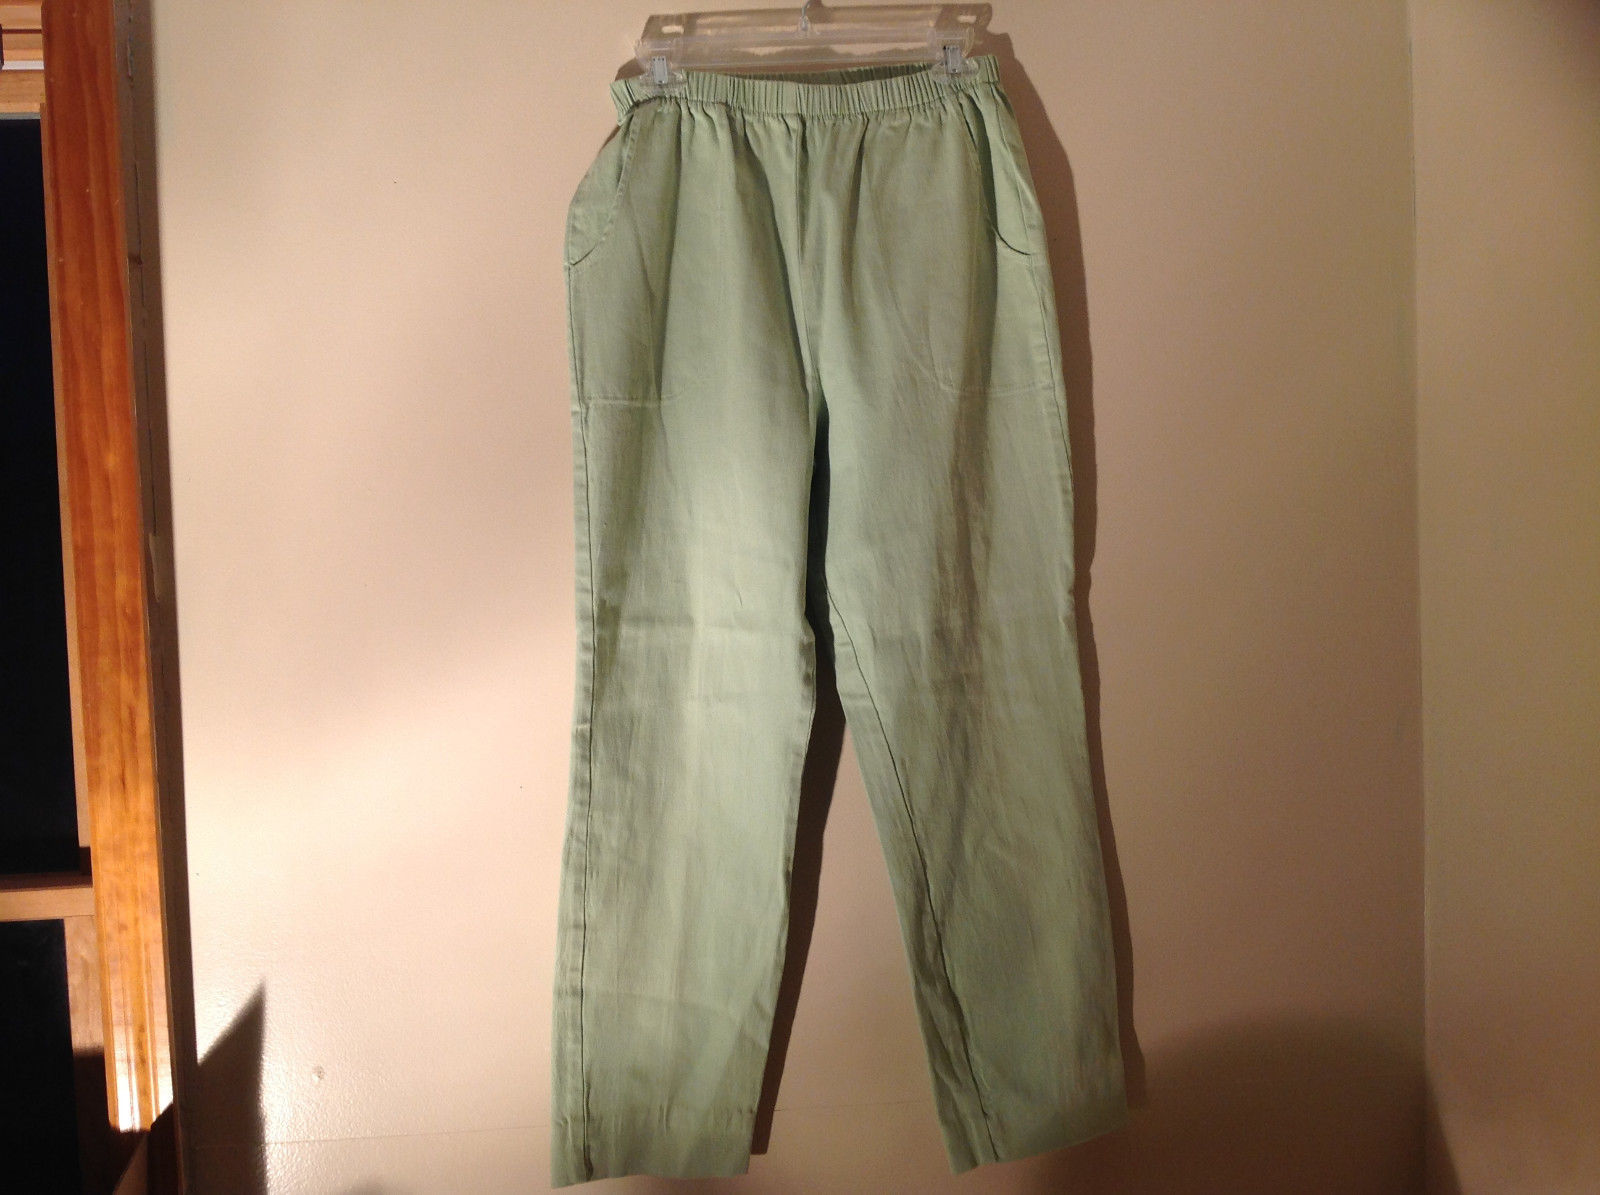 Pale Green Denim and Company Elastic Waistband Two Pockets Pants Size Medium